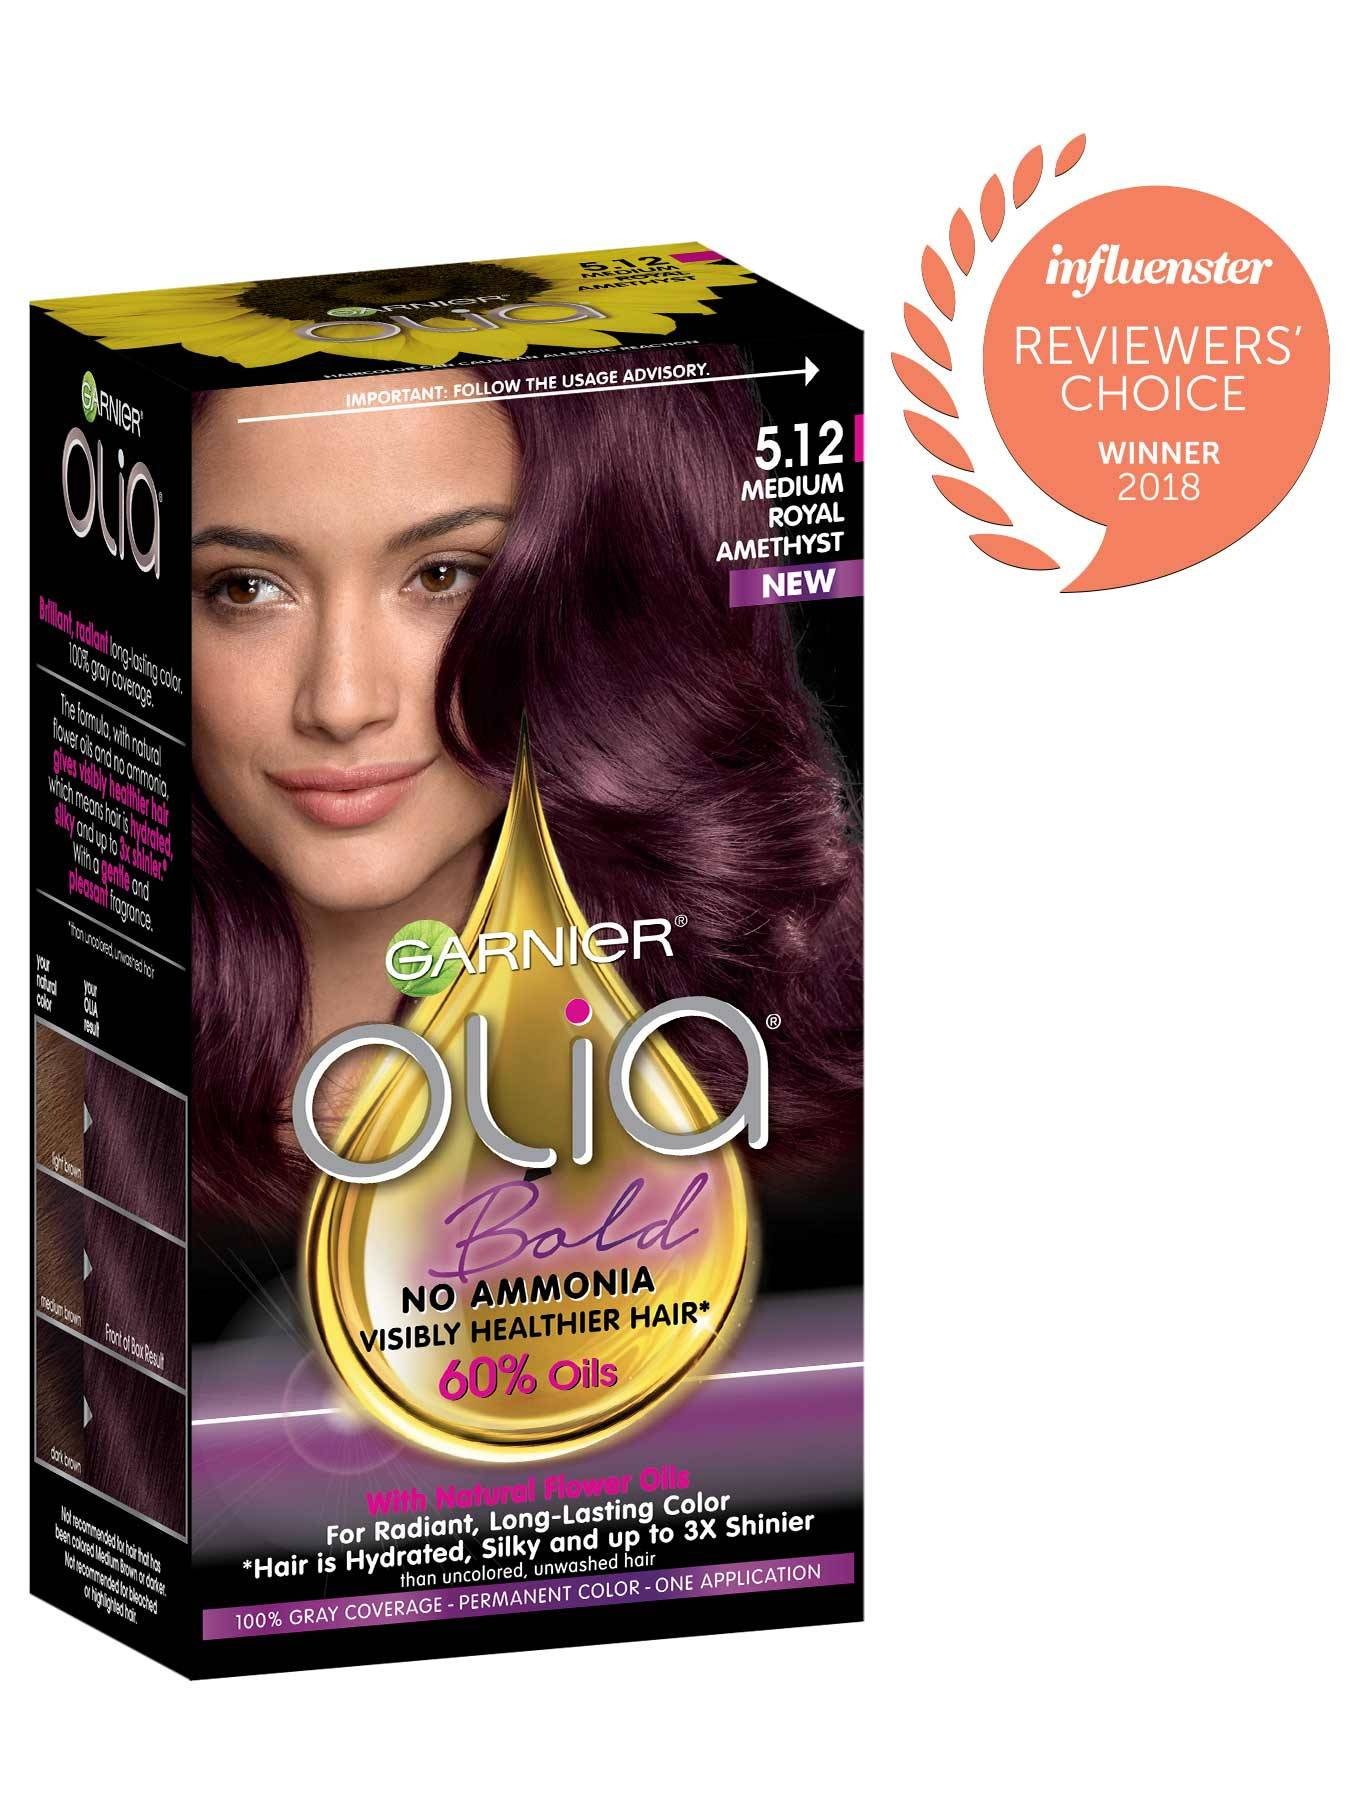 Garnier Olia Bold Packshot Award 5.12 Medium Royal Amethyst